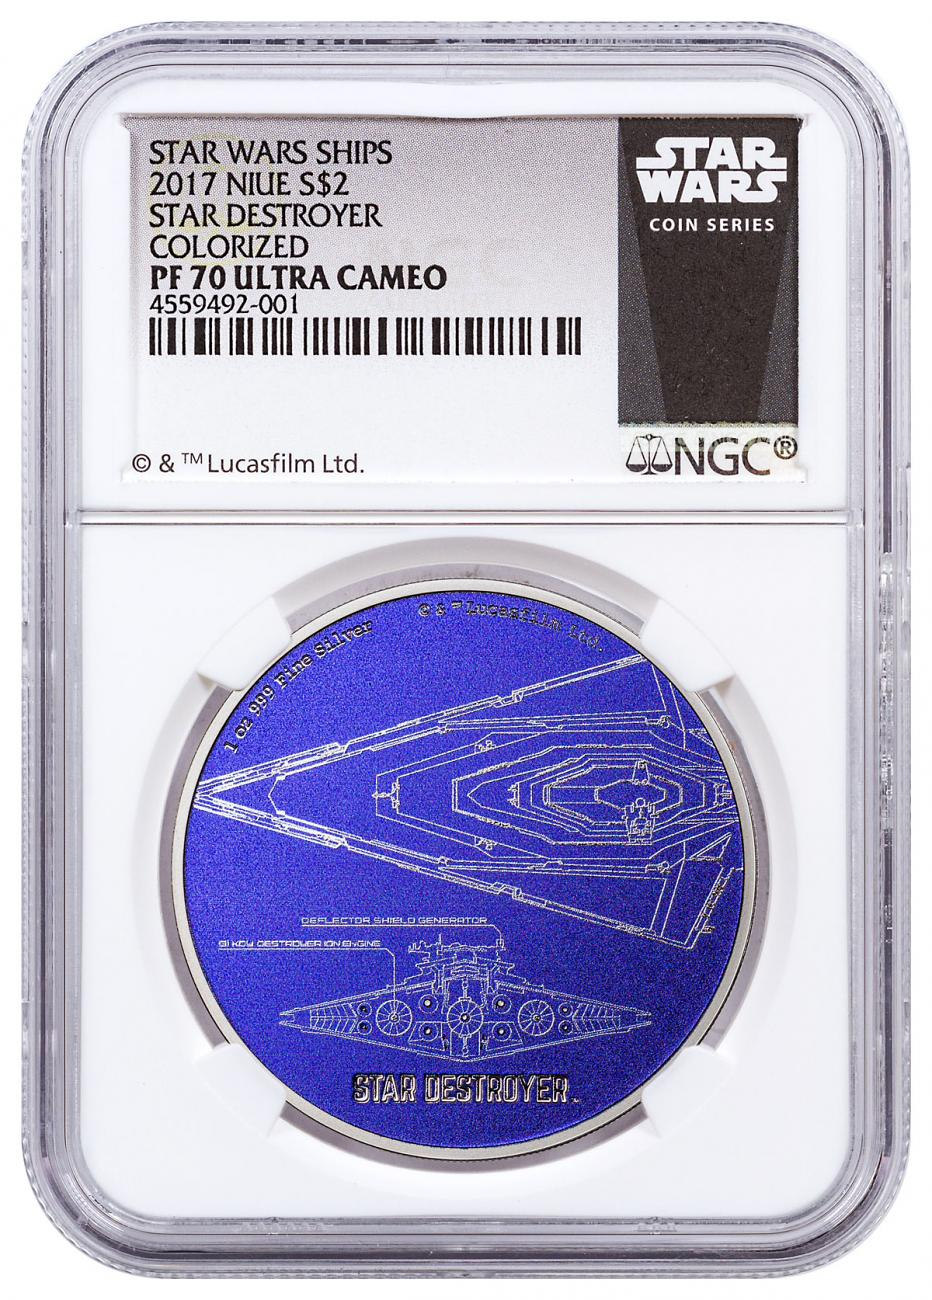 2017 Niue Star Wars Ships - Star Destroyer 1 oz Silver Colorized Proof $2 Coin NGC PF70 UC Exclusive Star Wars Label